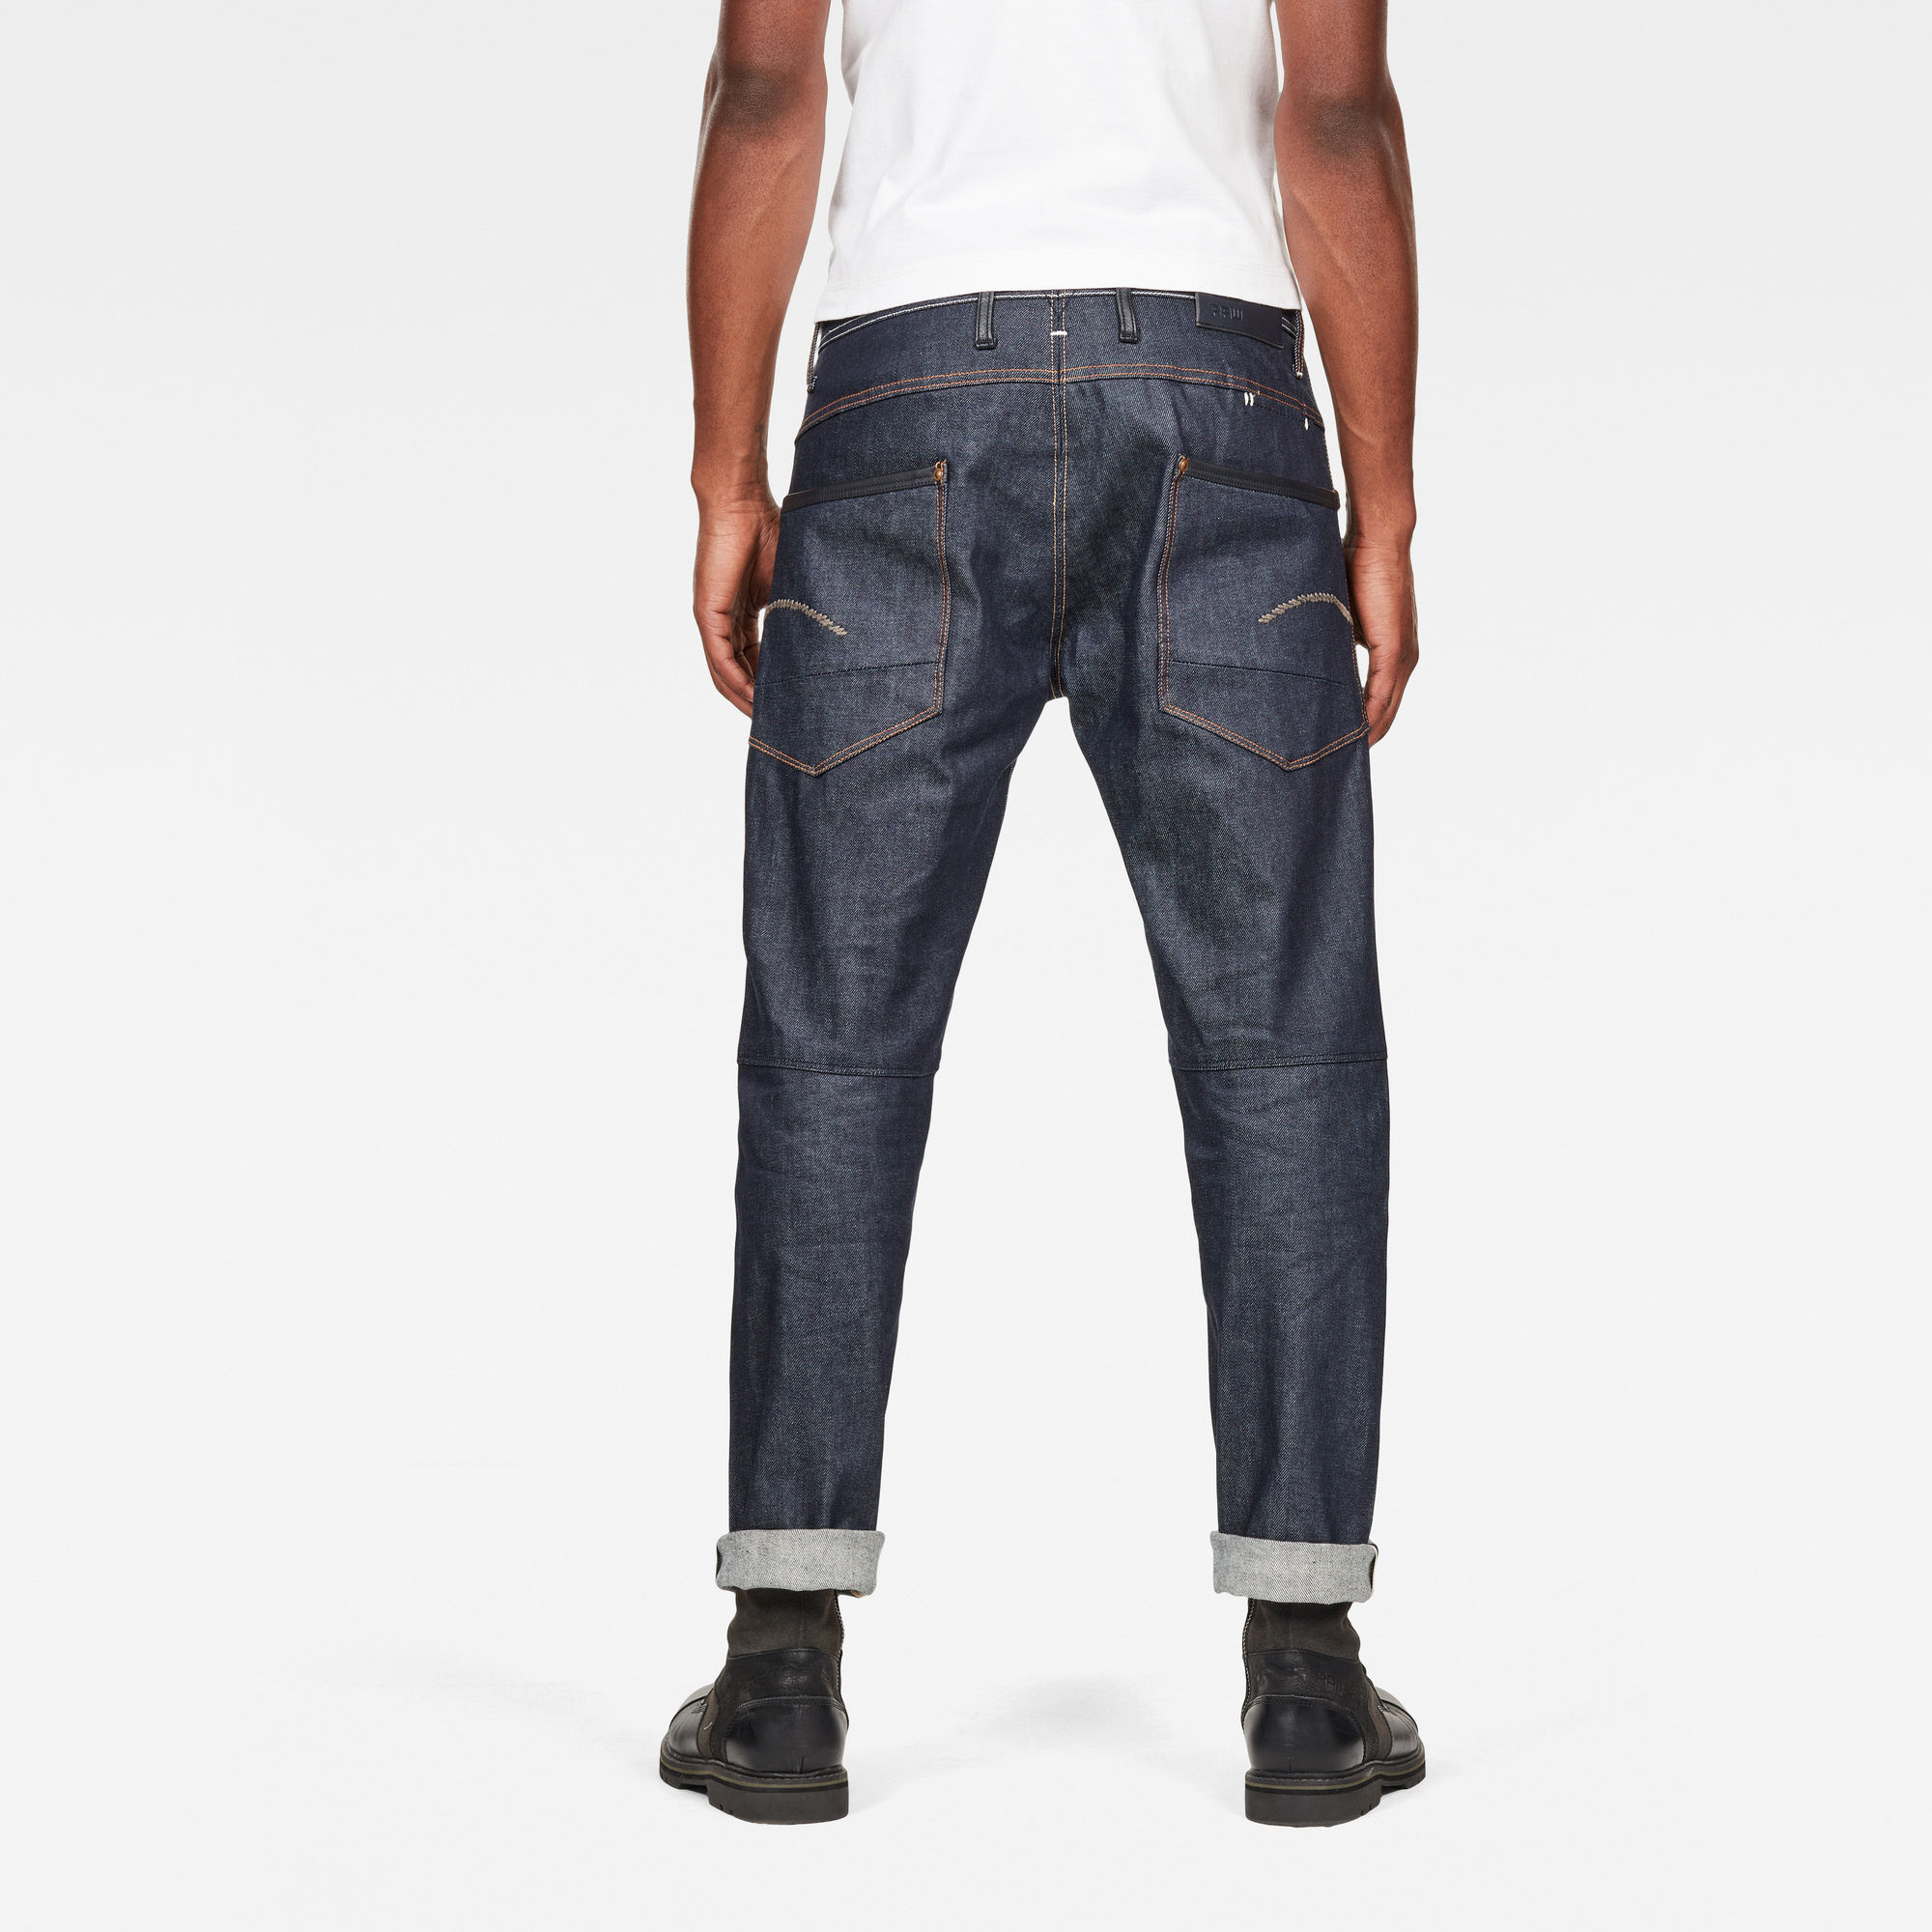 G-Star RAW 30 Years G-Star Jackpant 3D Straight Jeans